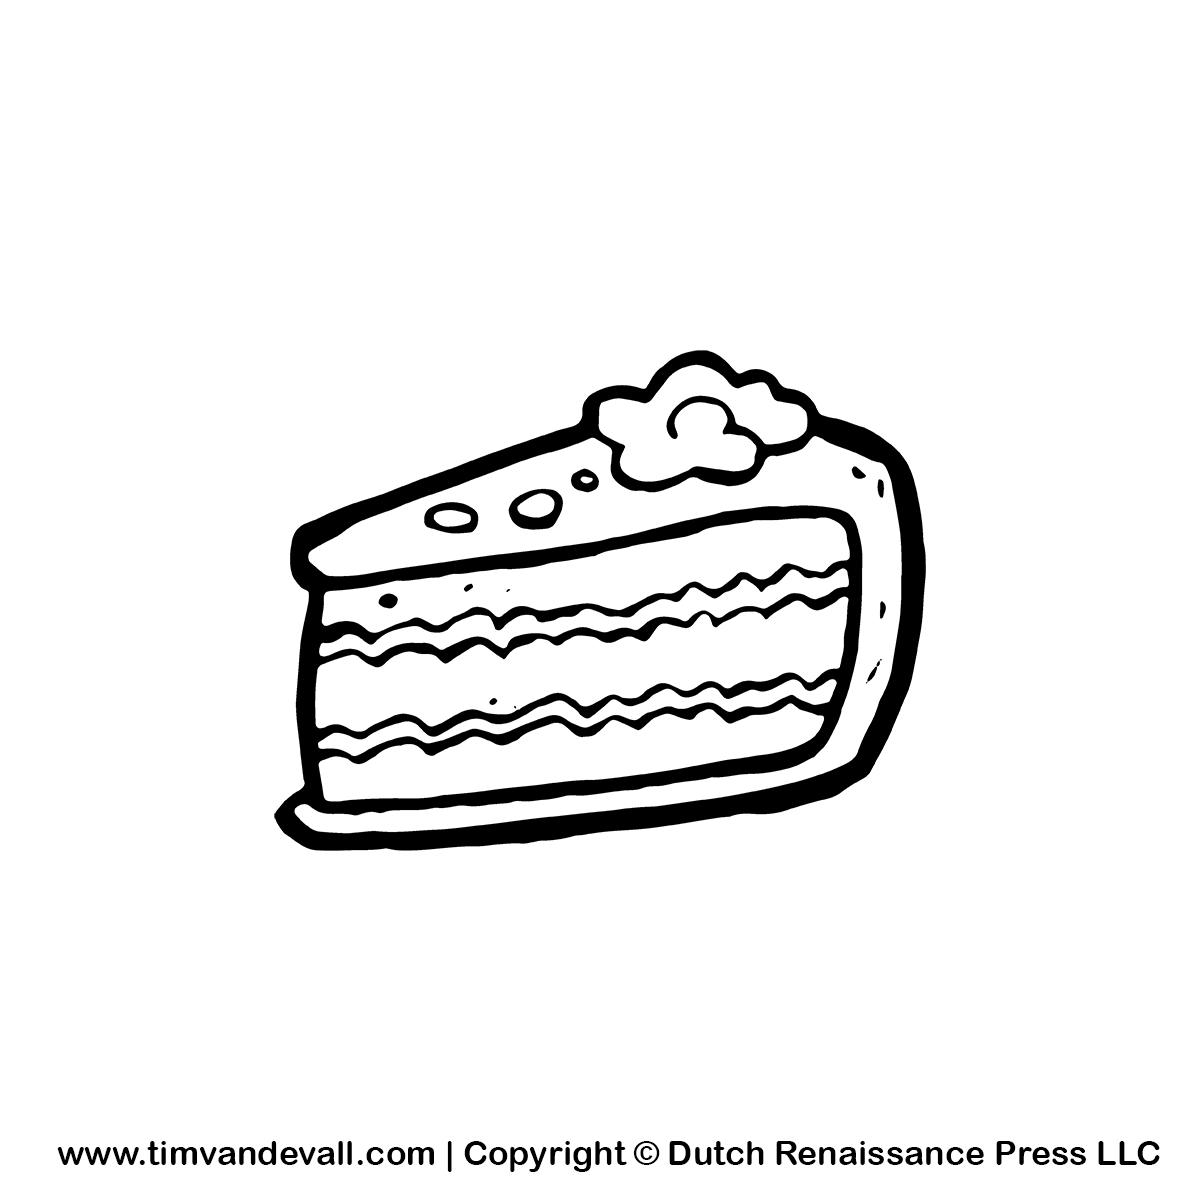 Chocolate Cake Images Black And White Drawings